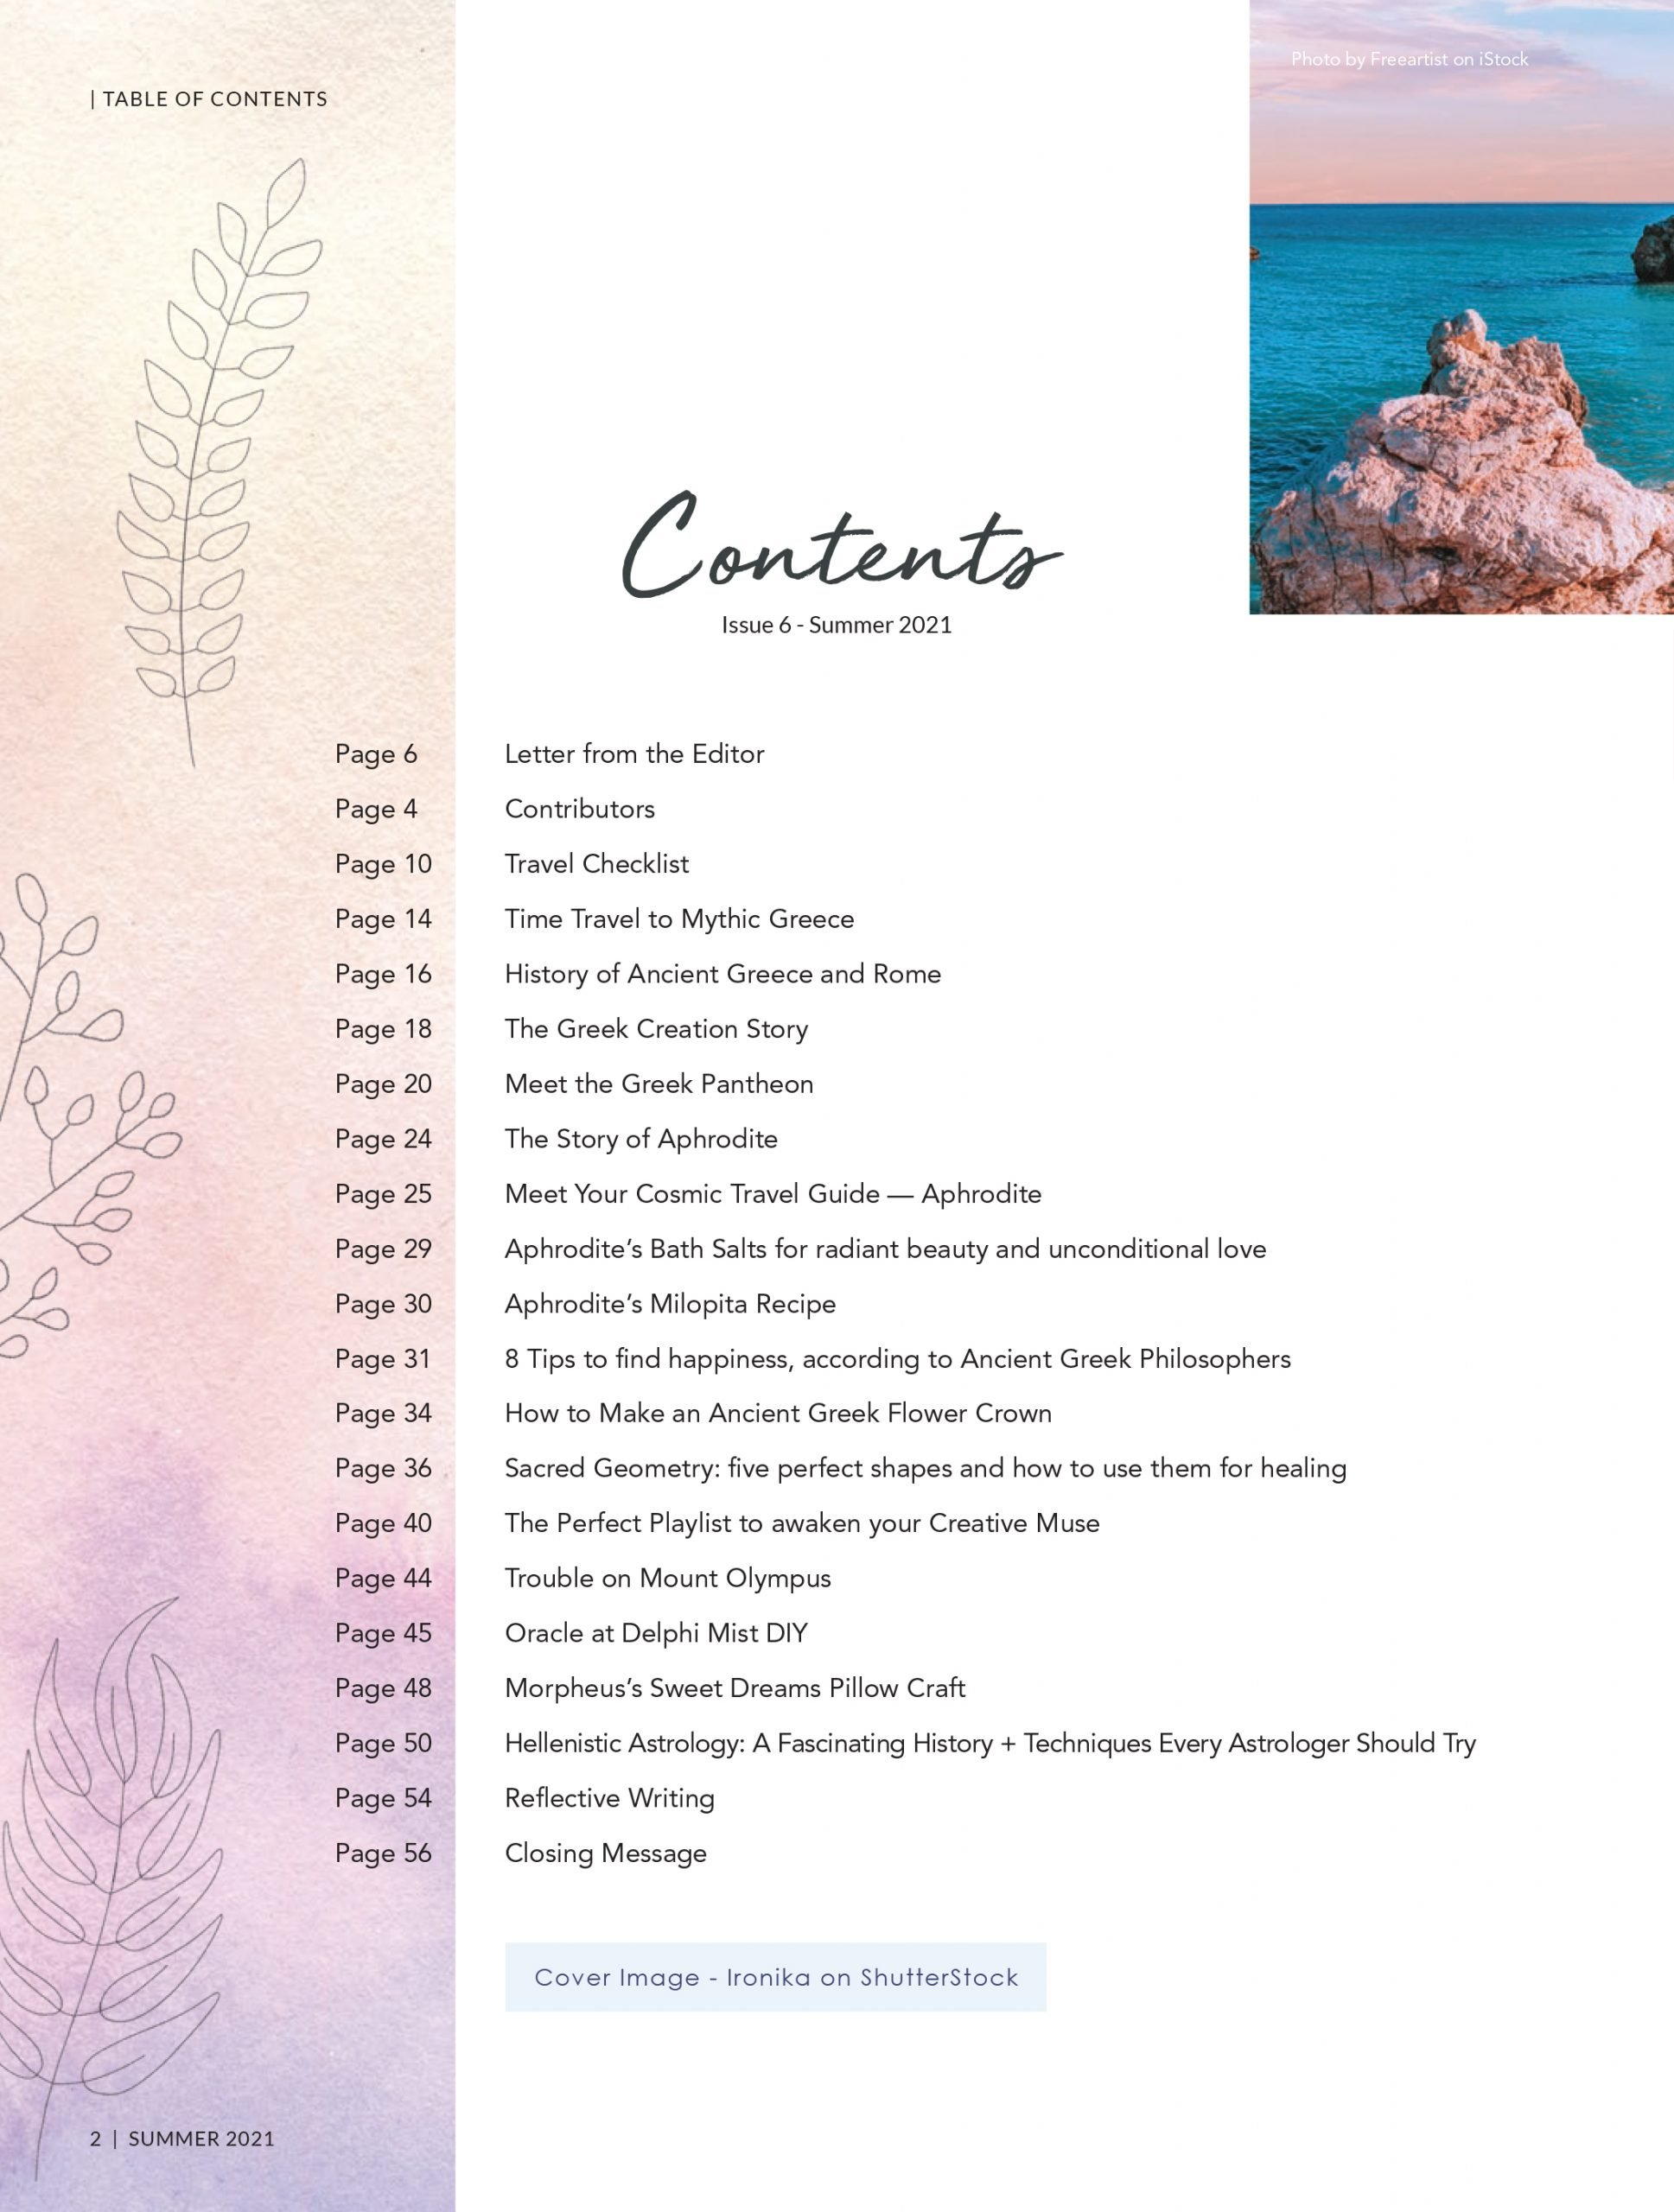 Summer Issue Contents